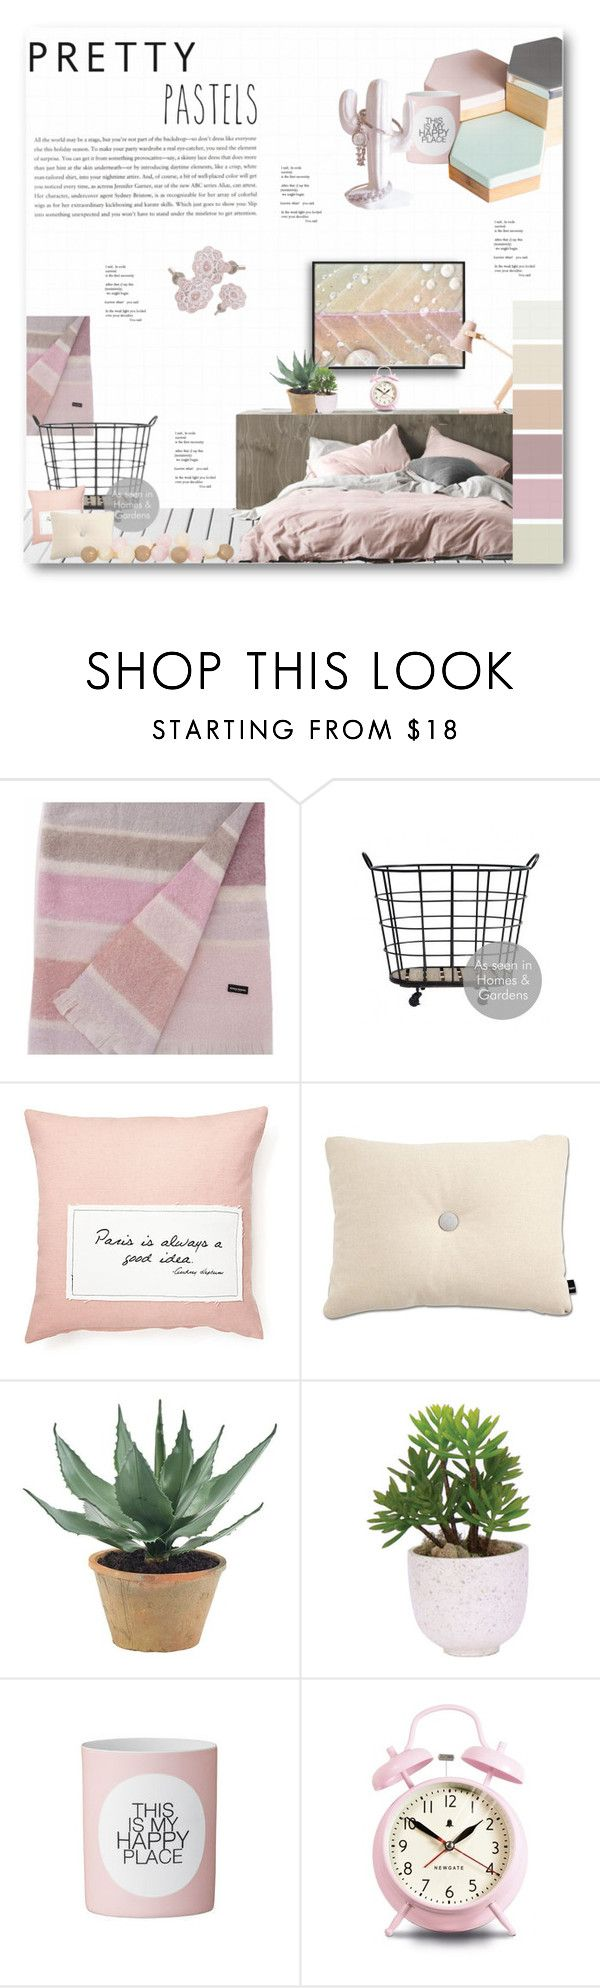 """Pretty Pastels"" by dittestegemejer ❤ liked on Polyvore featuring interior, interiors, interior design, home, home decor, interior decorating, Sonia Rykiel, French Laundry Home, NDI and Lux-Art Silks"